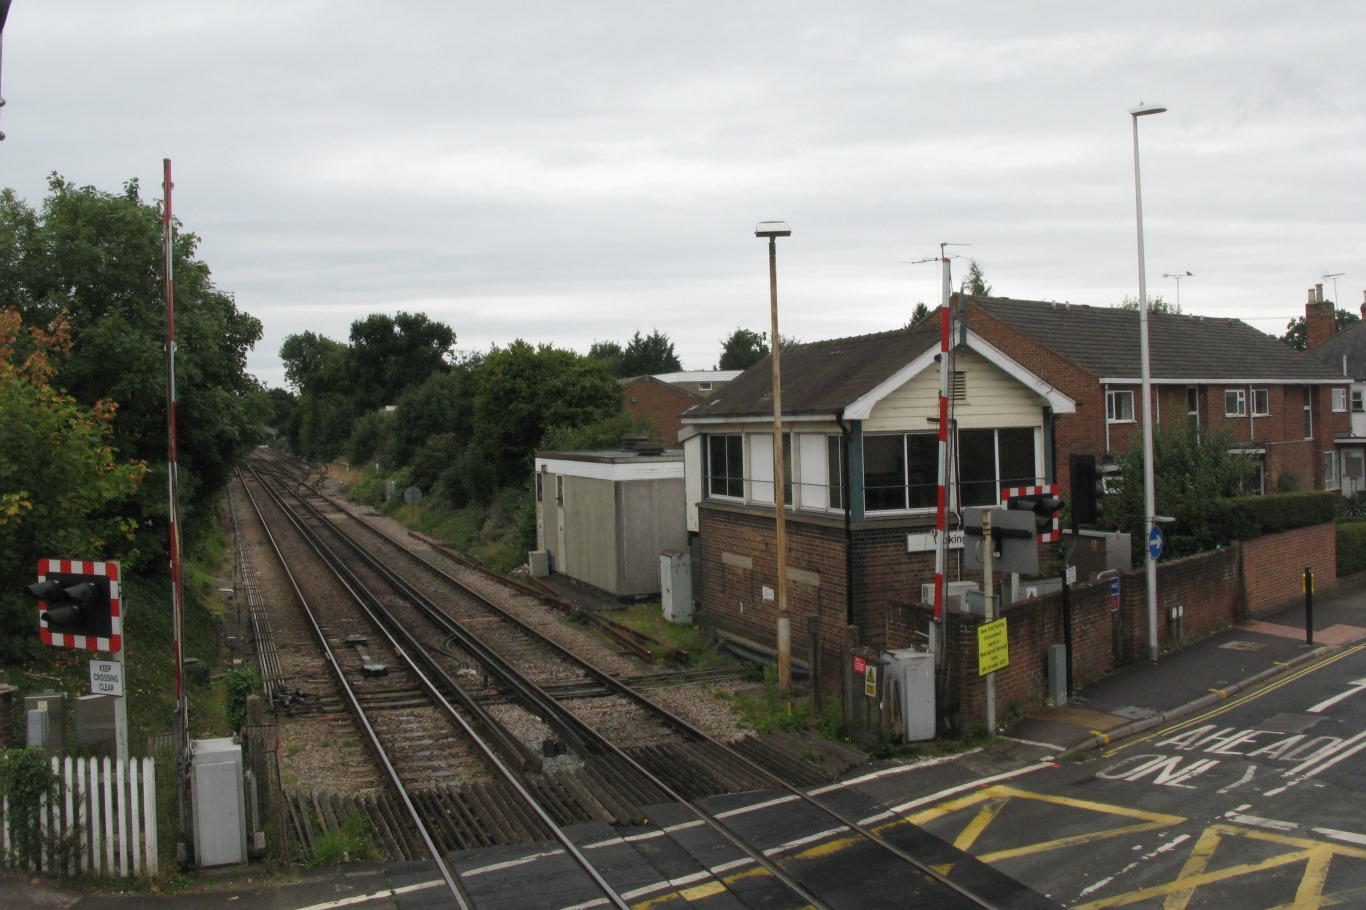 File:2017 at Wokingham station - level crossing signal box